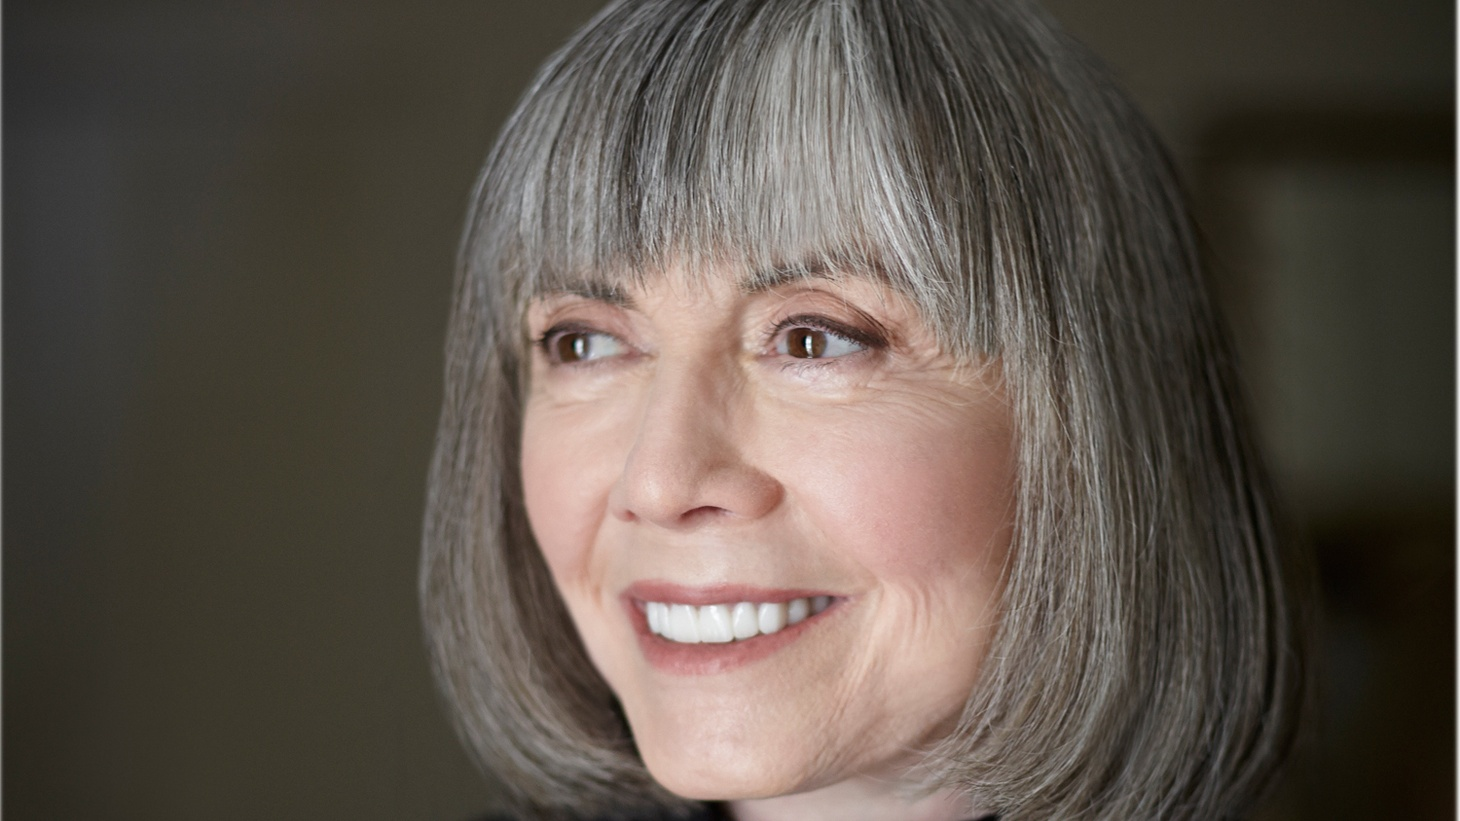 Author Anne Rice has written over 30 books throughout her career. She shares a couple songs that helped her through tough times, a sensual track from Tina Turner, a protest song for women, as well as the artist that has inspired her most well-known character, Vampire Lestat.